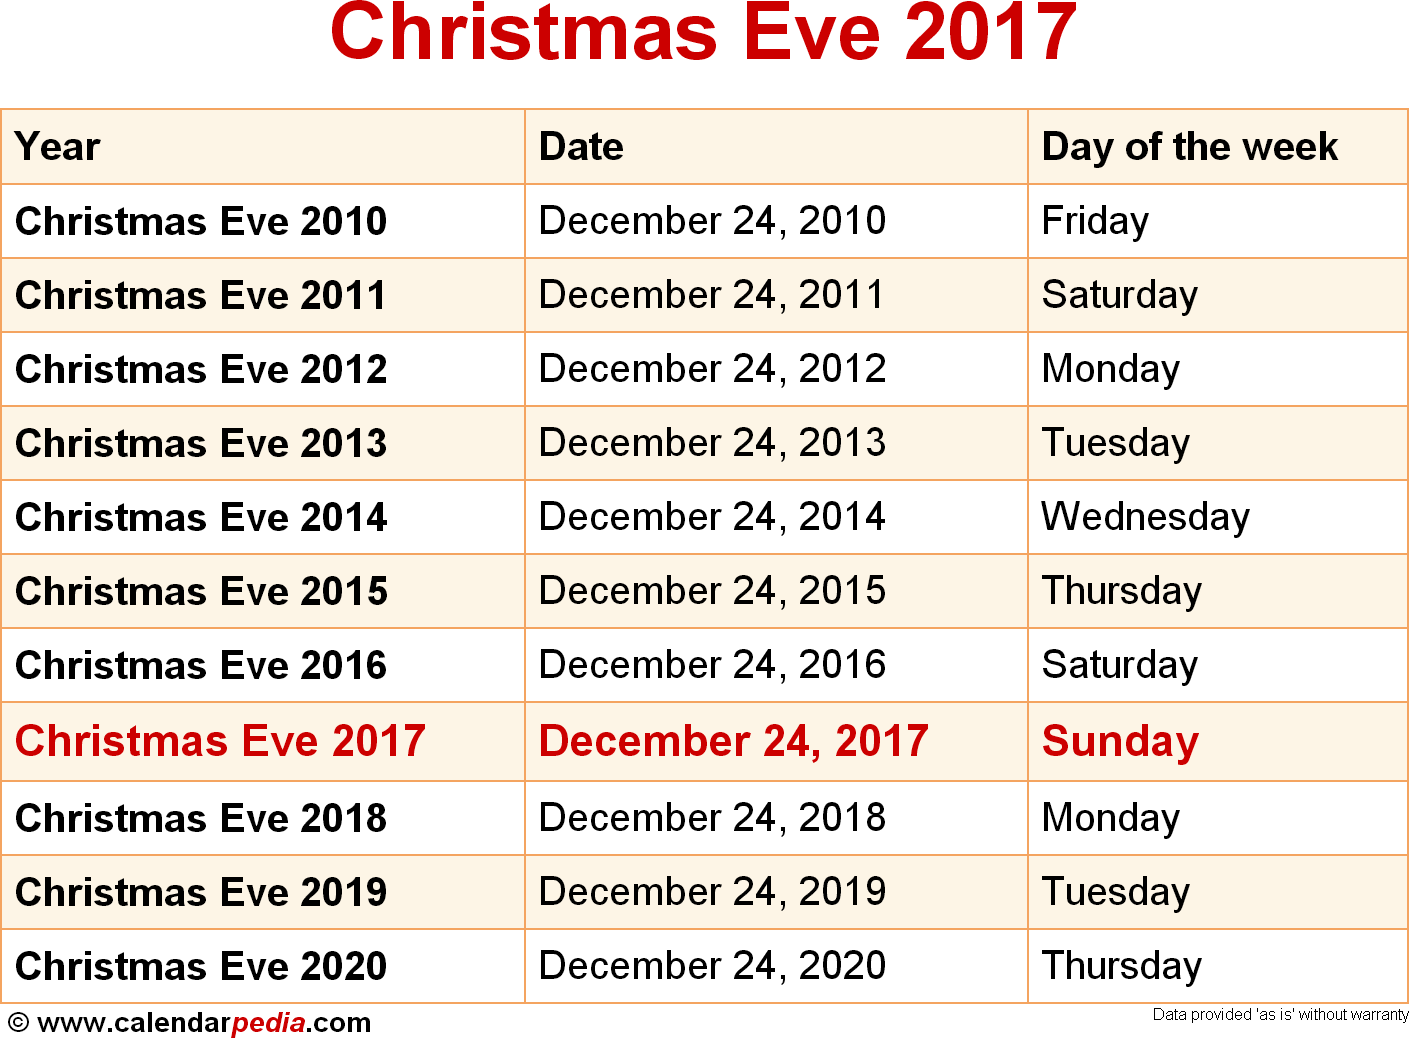 When is Christmas Eve 2017 & 2018? Dates of Christmas Eve